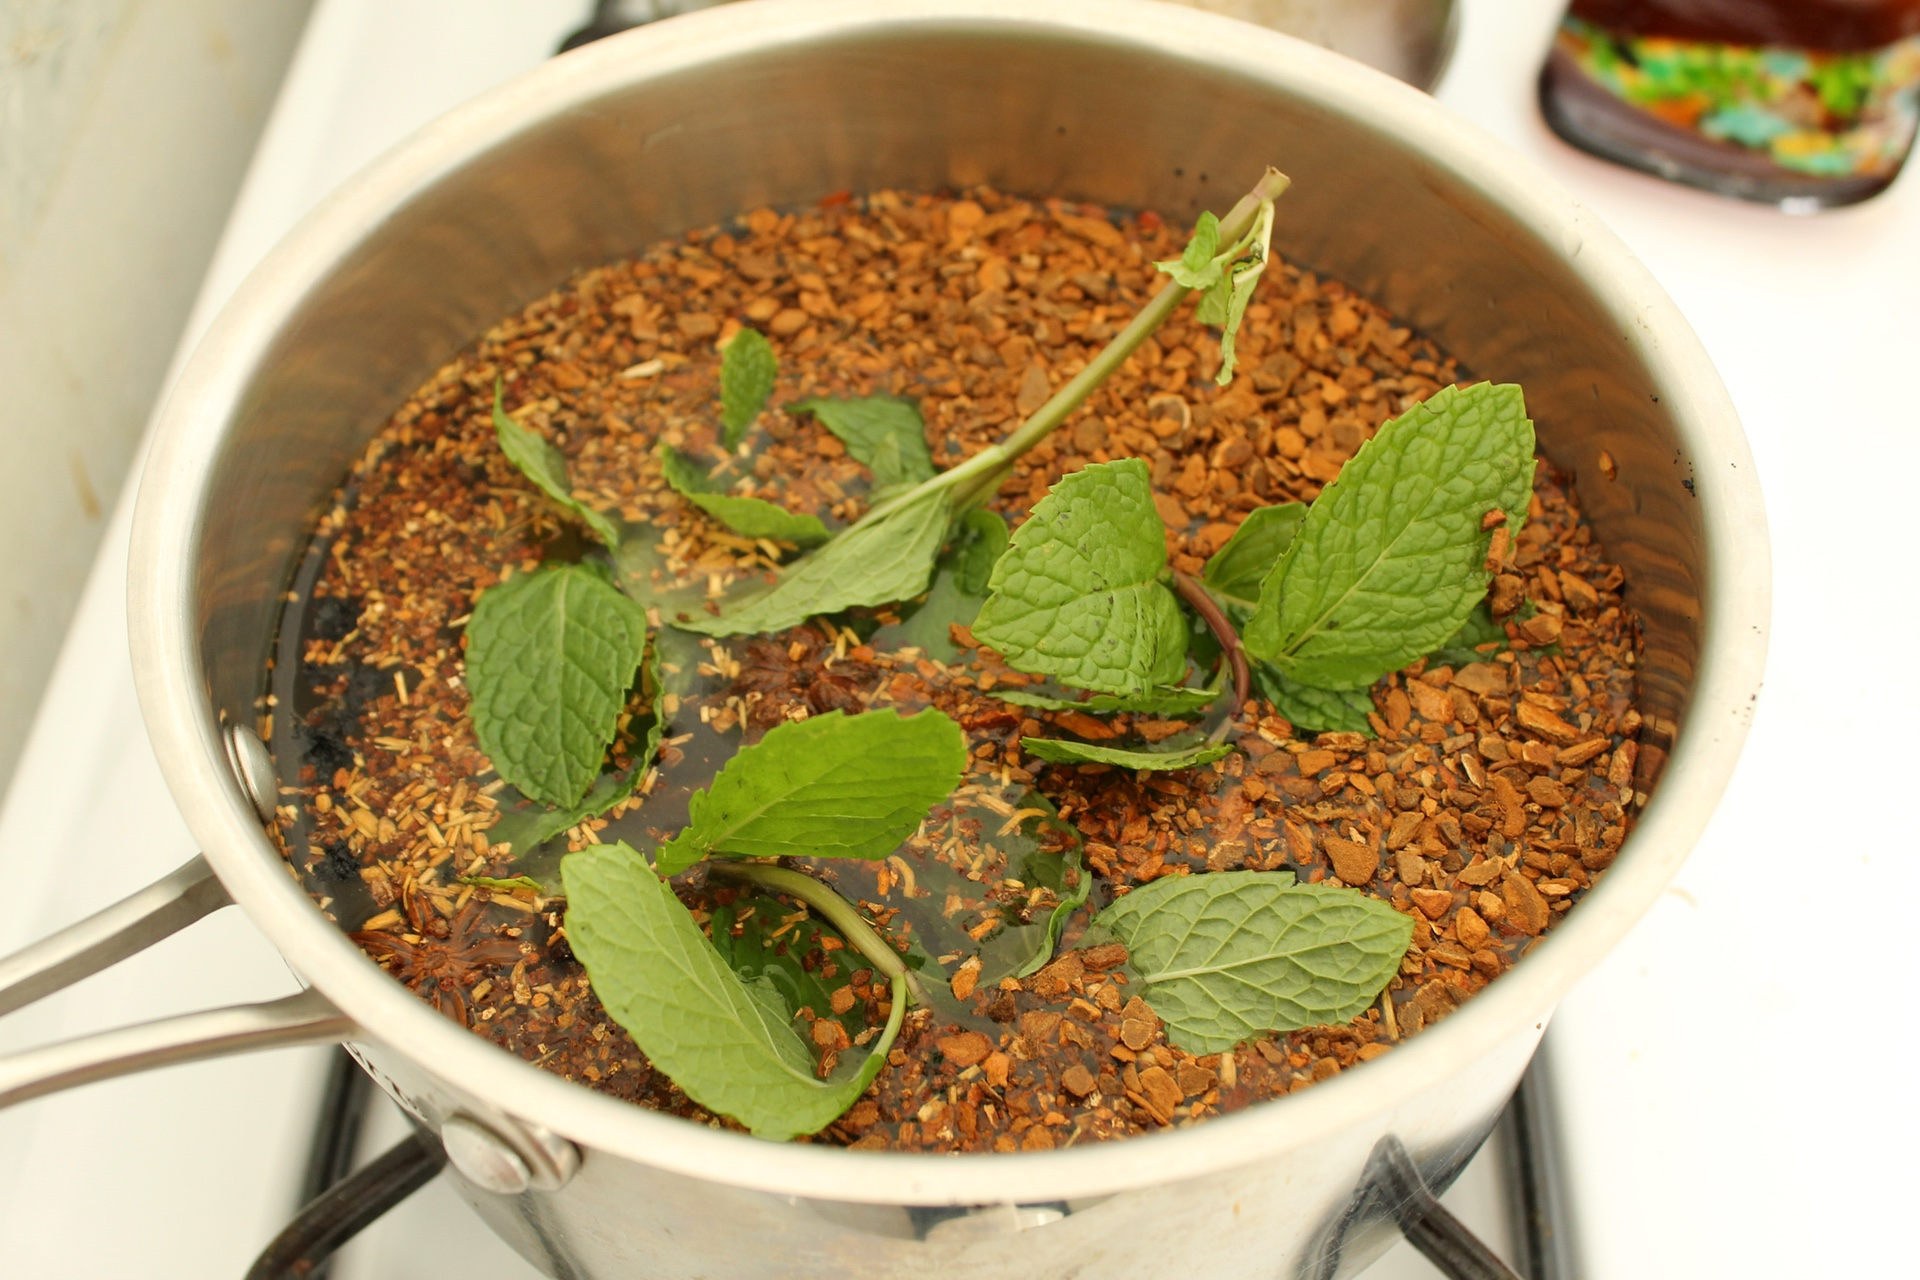 Combine the roots and aromatics with water in a pot to steep.